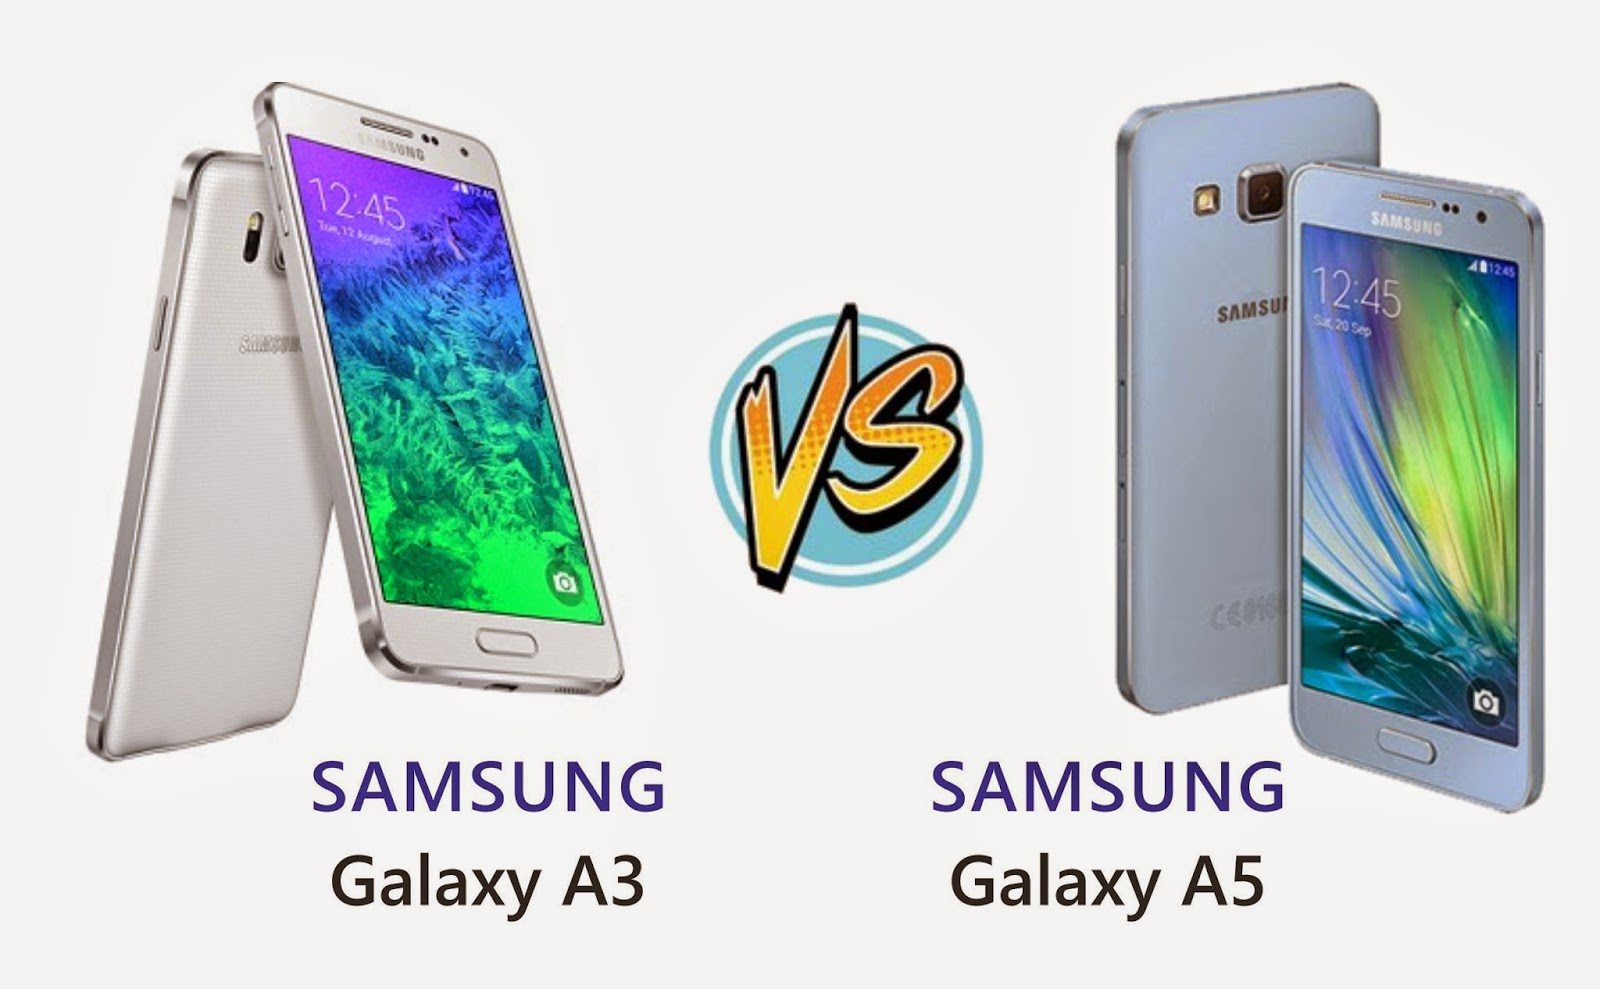 Samsung Galaxy A3 vs Galaxy A5 – Which One's Better for You?